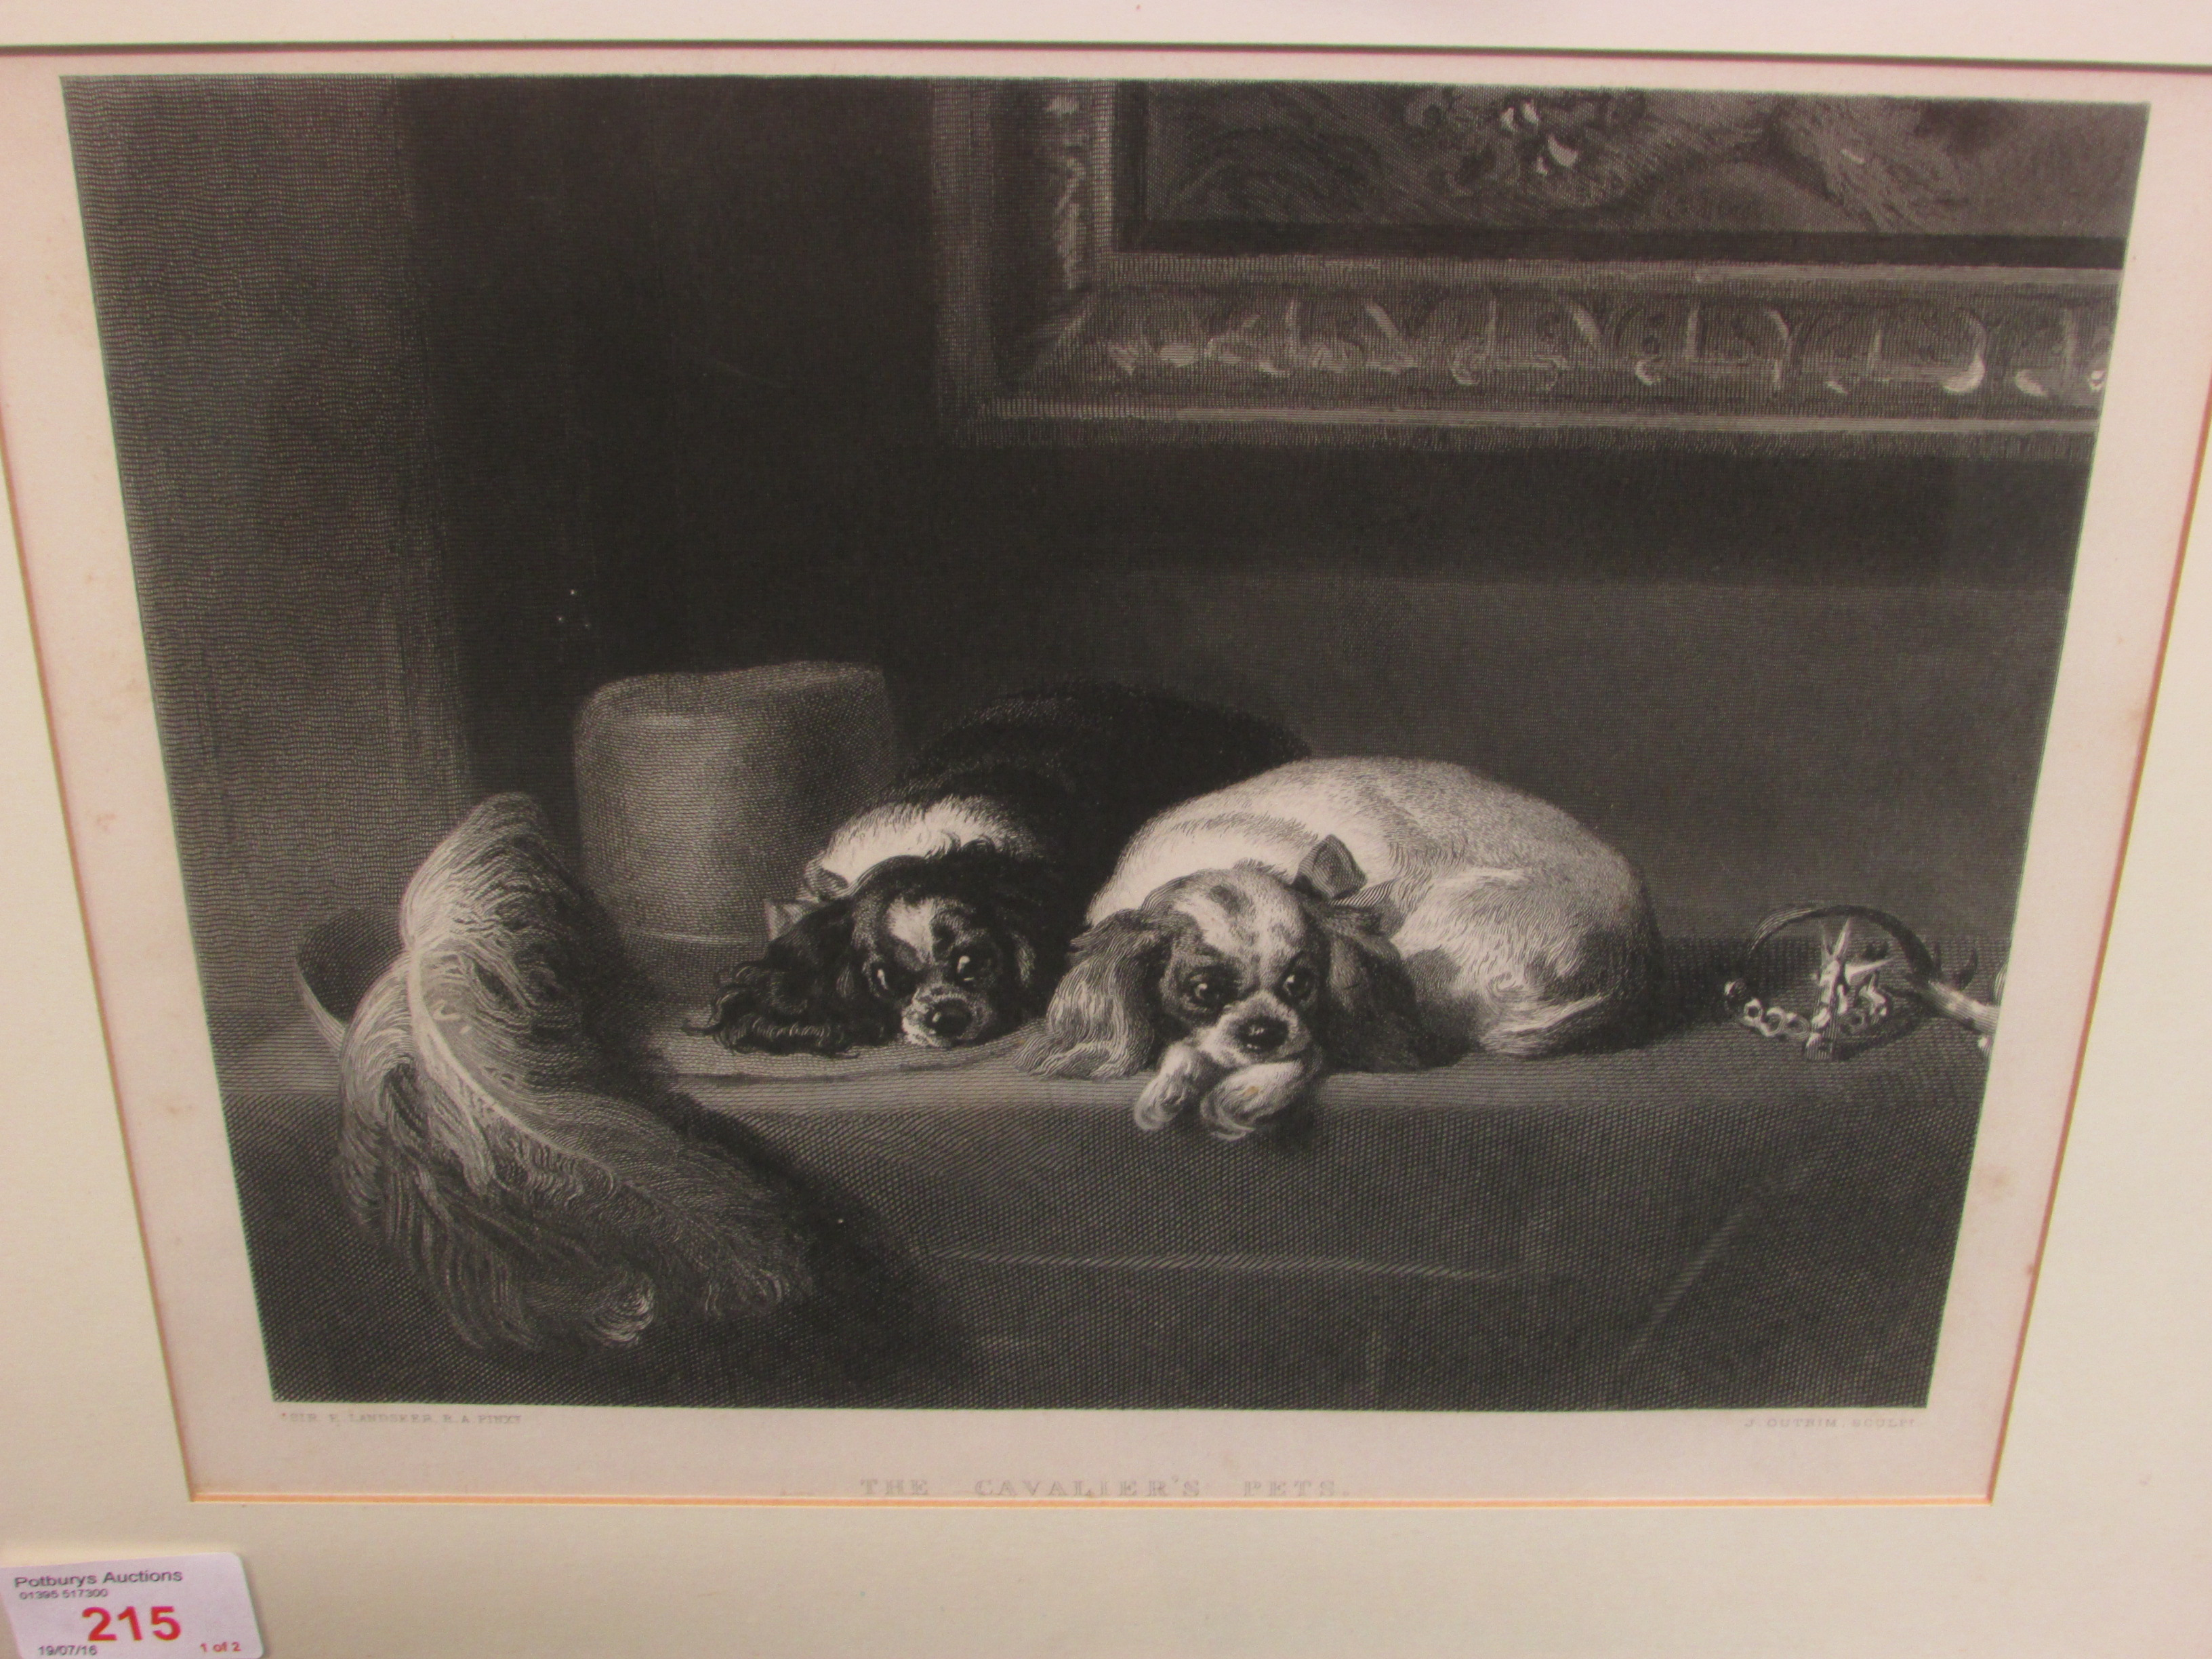 Lot 215 - Two 19th century engravings - 'The Cavalier's Pets', J Outrim after Sir Edward Landseer (21cm x 26.